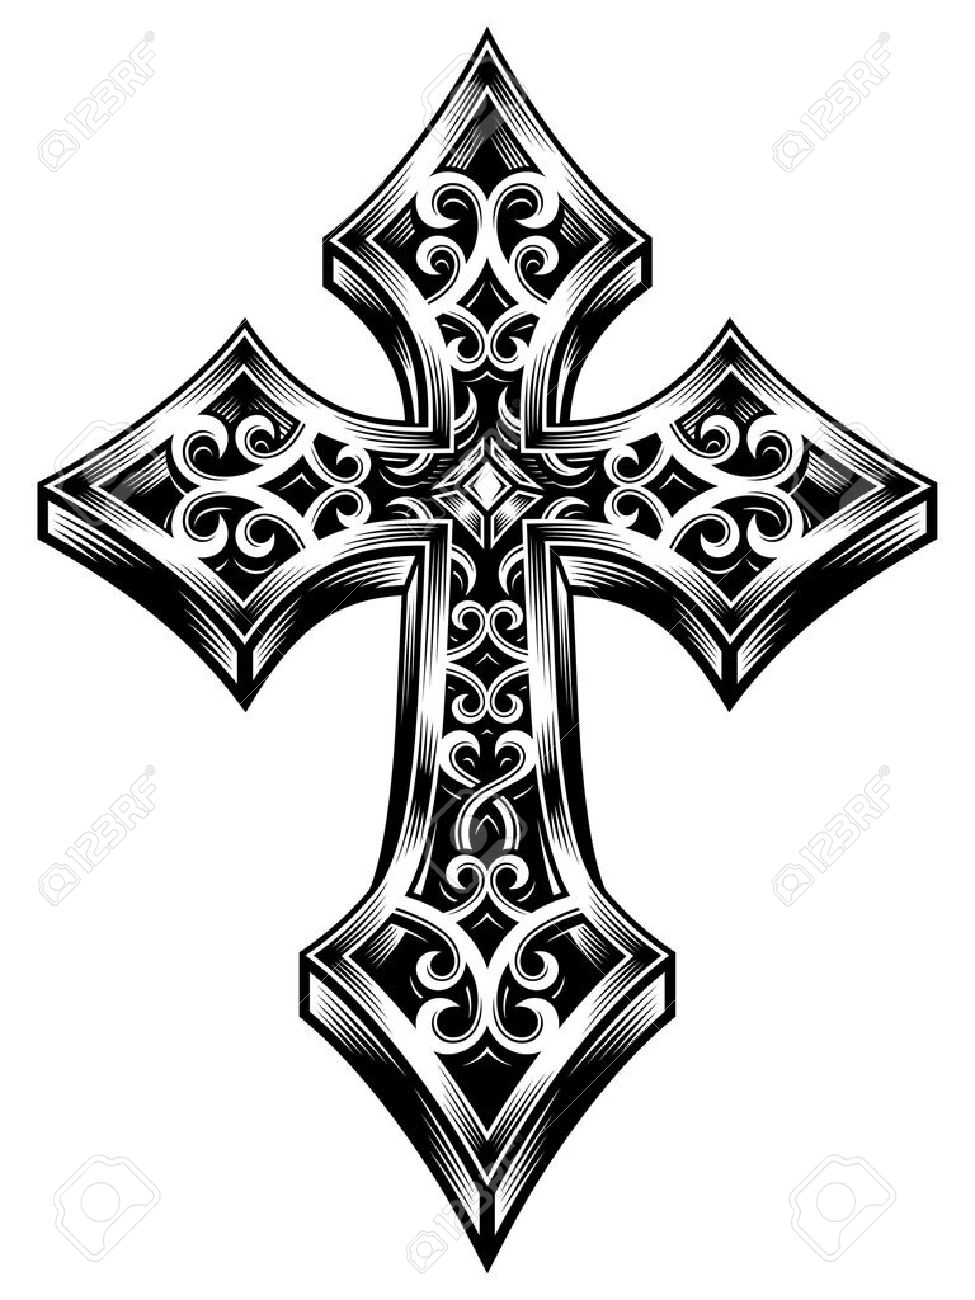 Ornate Celtic Cross Vector Royalty Free Cliparts, Vectors, And ...